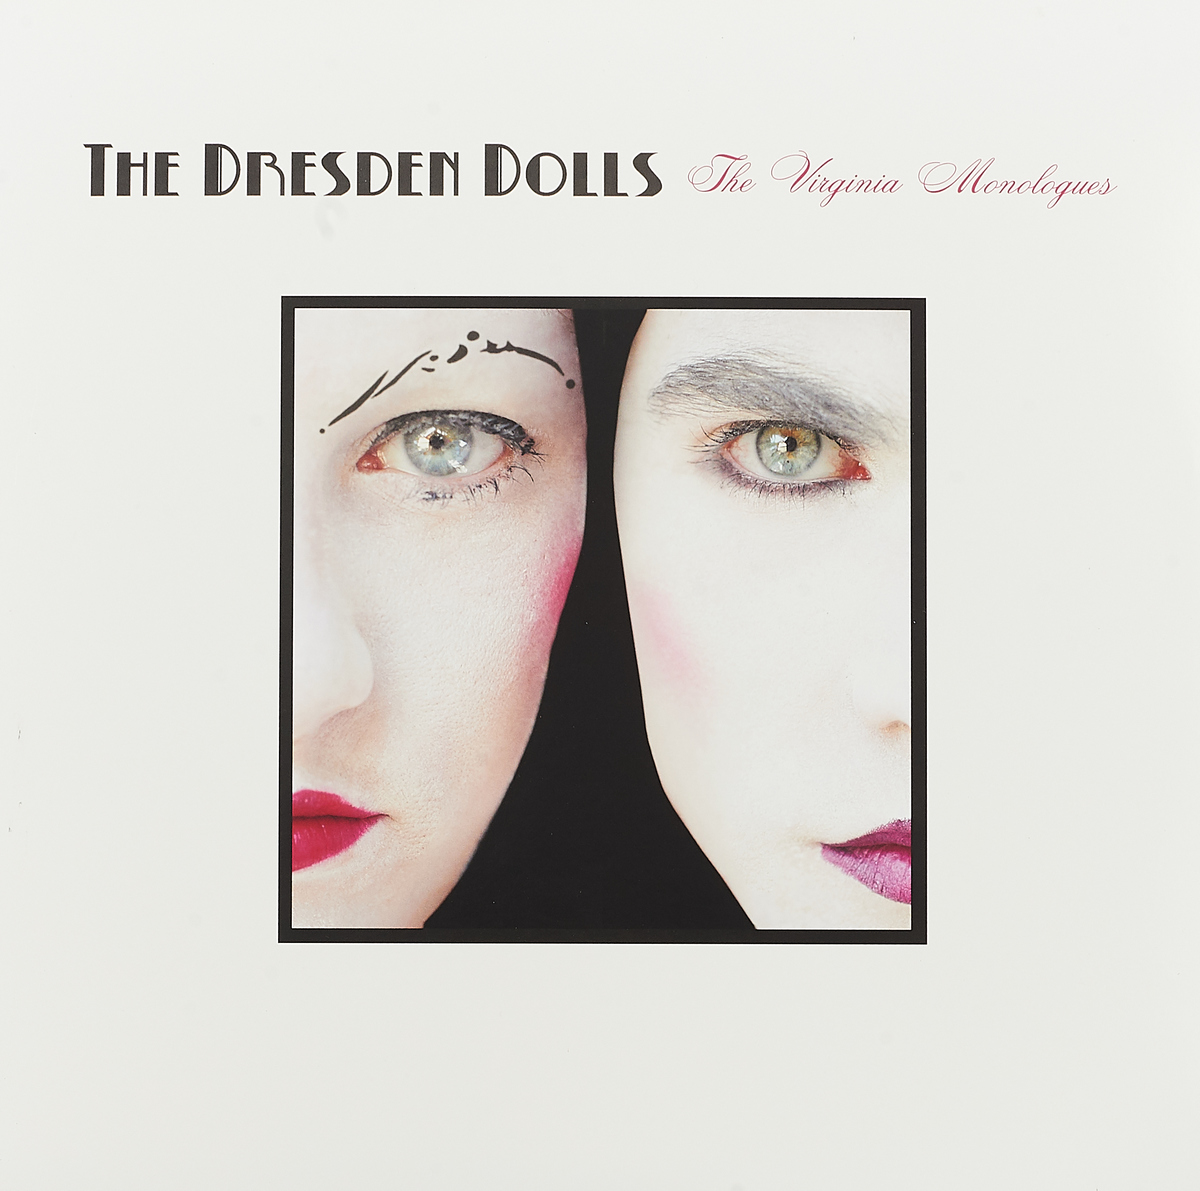 The Dresden Dolls The Dresden Dolls. The Virginia Monologues (3 LP) azet dresden